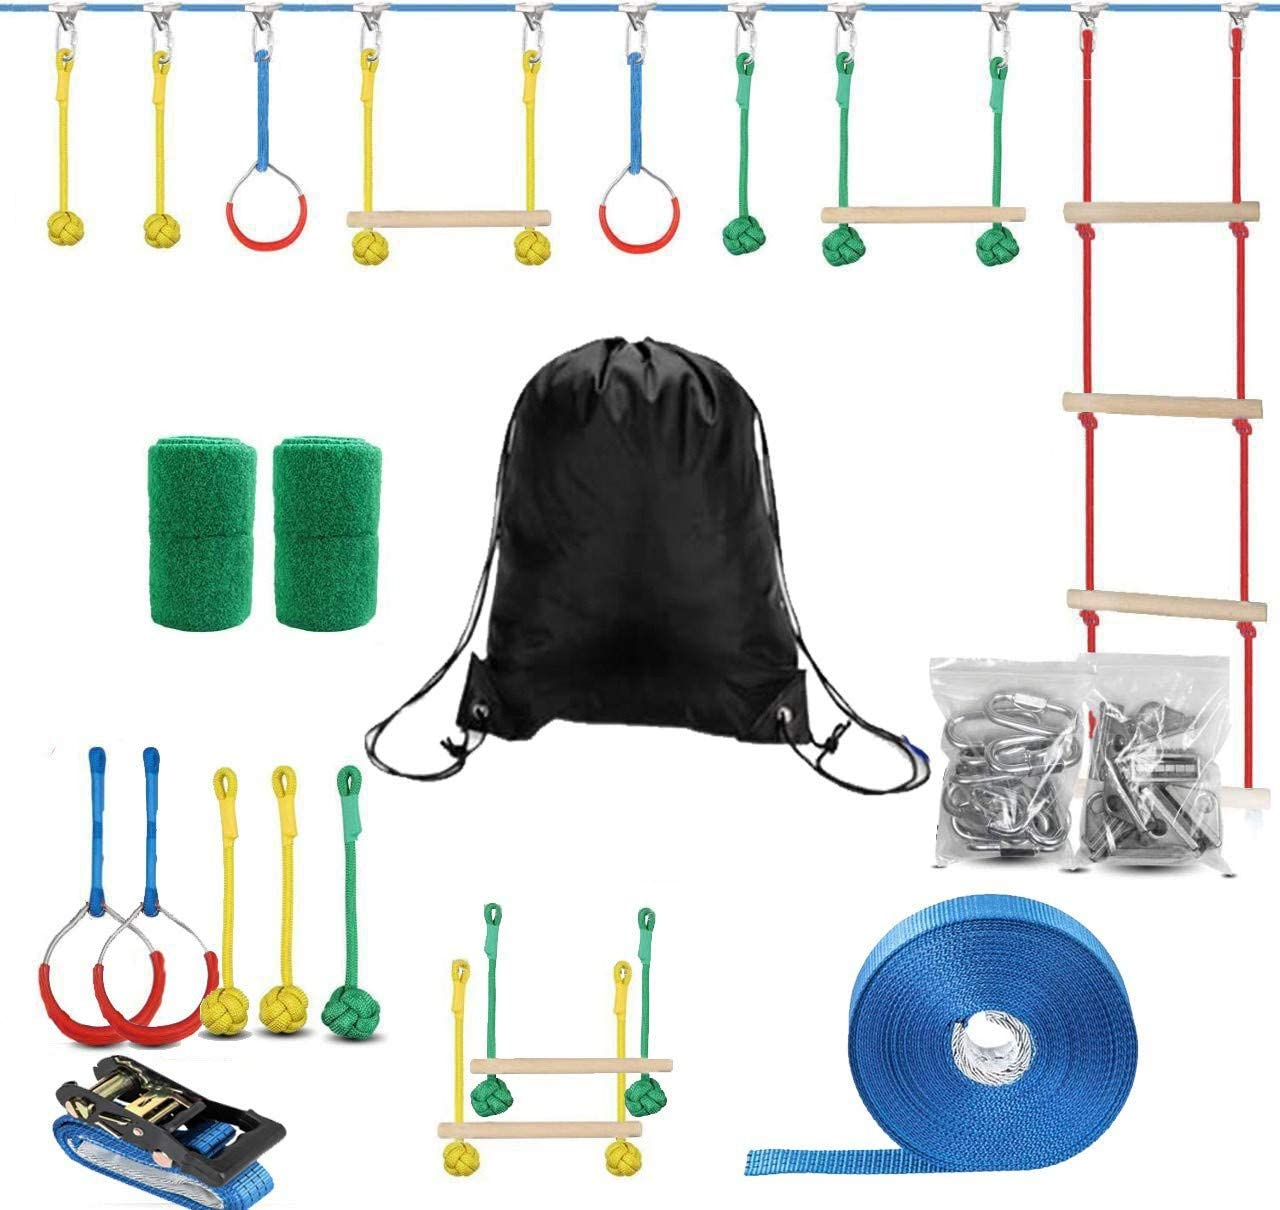 Lucky Link 49ft Ninja Warrior Slackline Obstacle Course, Jungle Gym Monkey Bars Kit for Kids Adults - Rope Ladder, 2 Training Bars, 2 Gymnastics Rings, 3 Fists, Tree Protectors for Outdoor Backyard